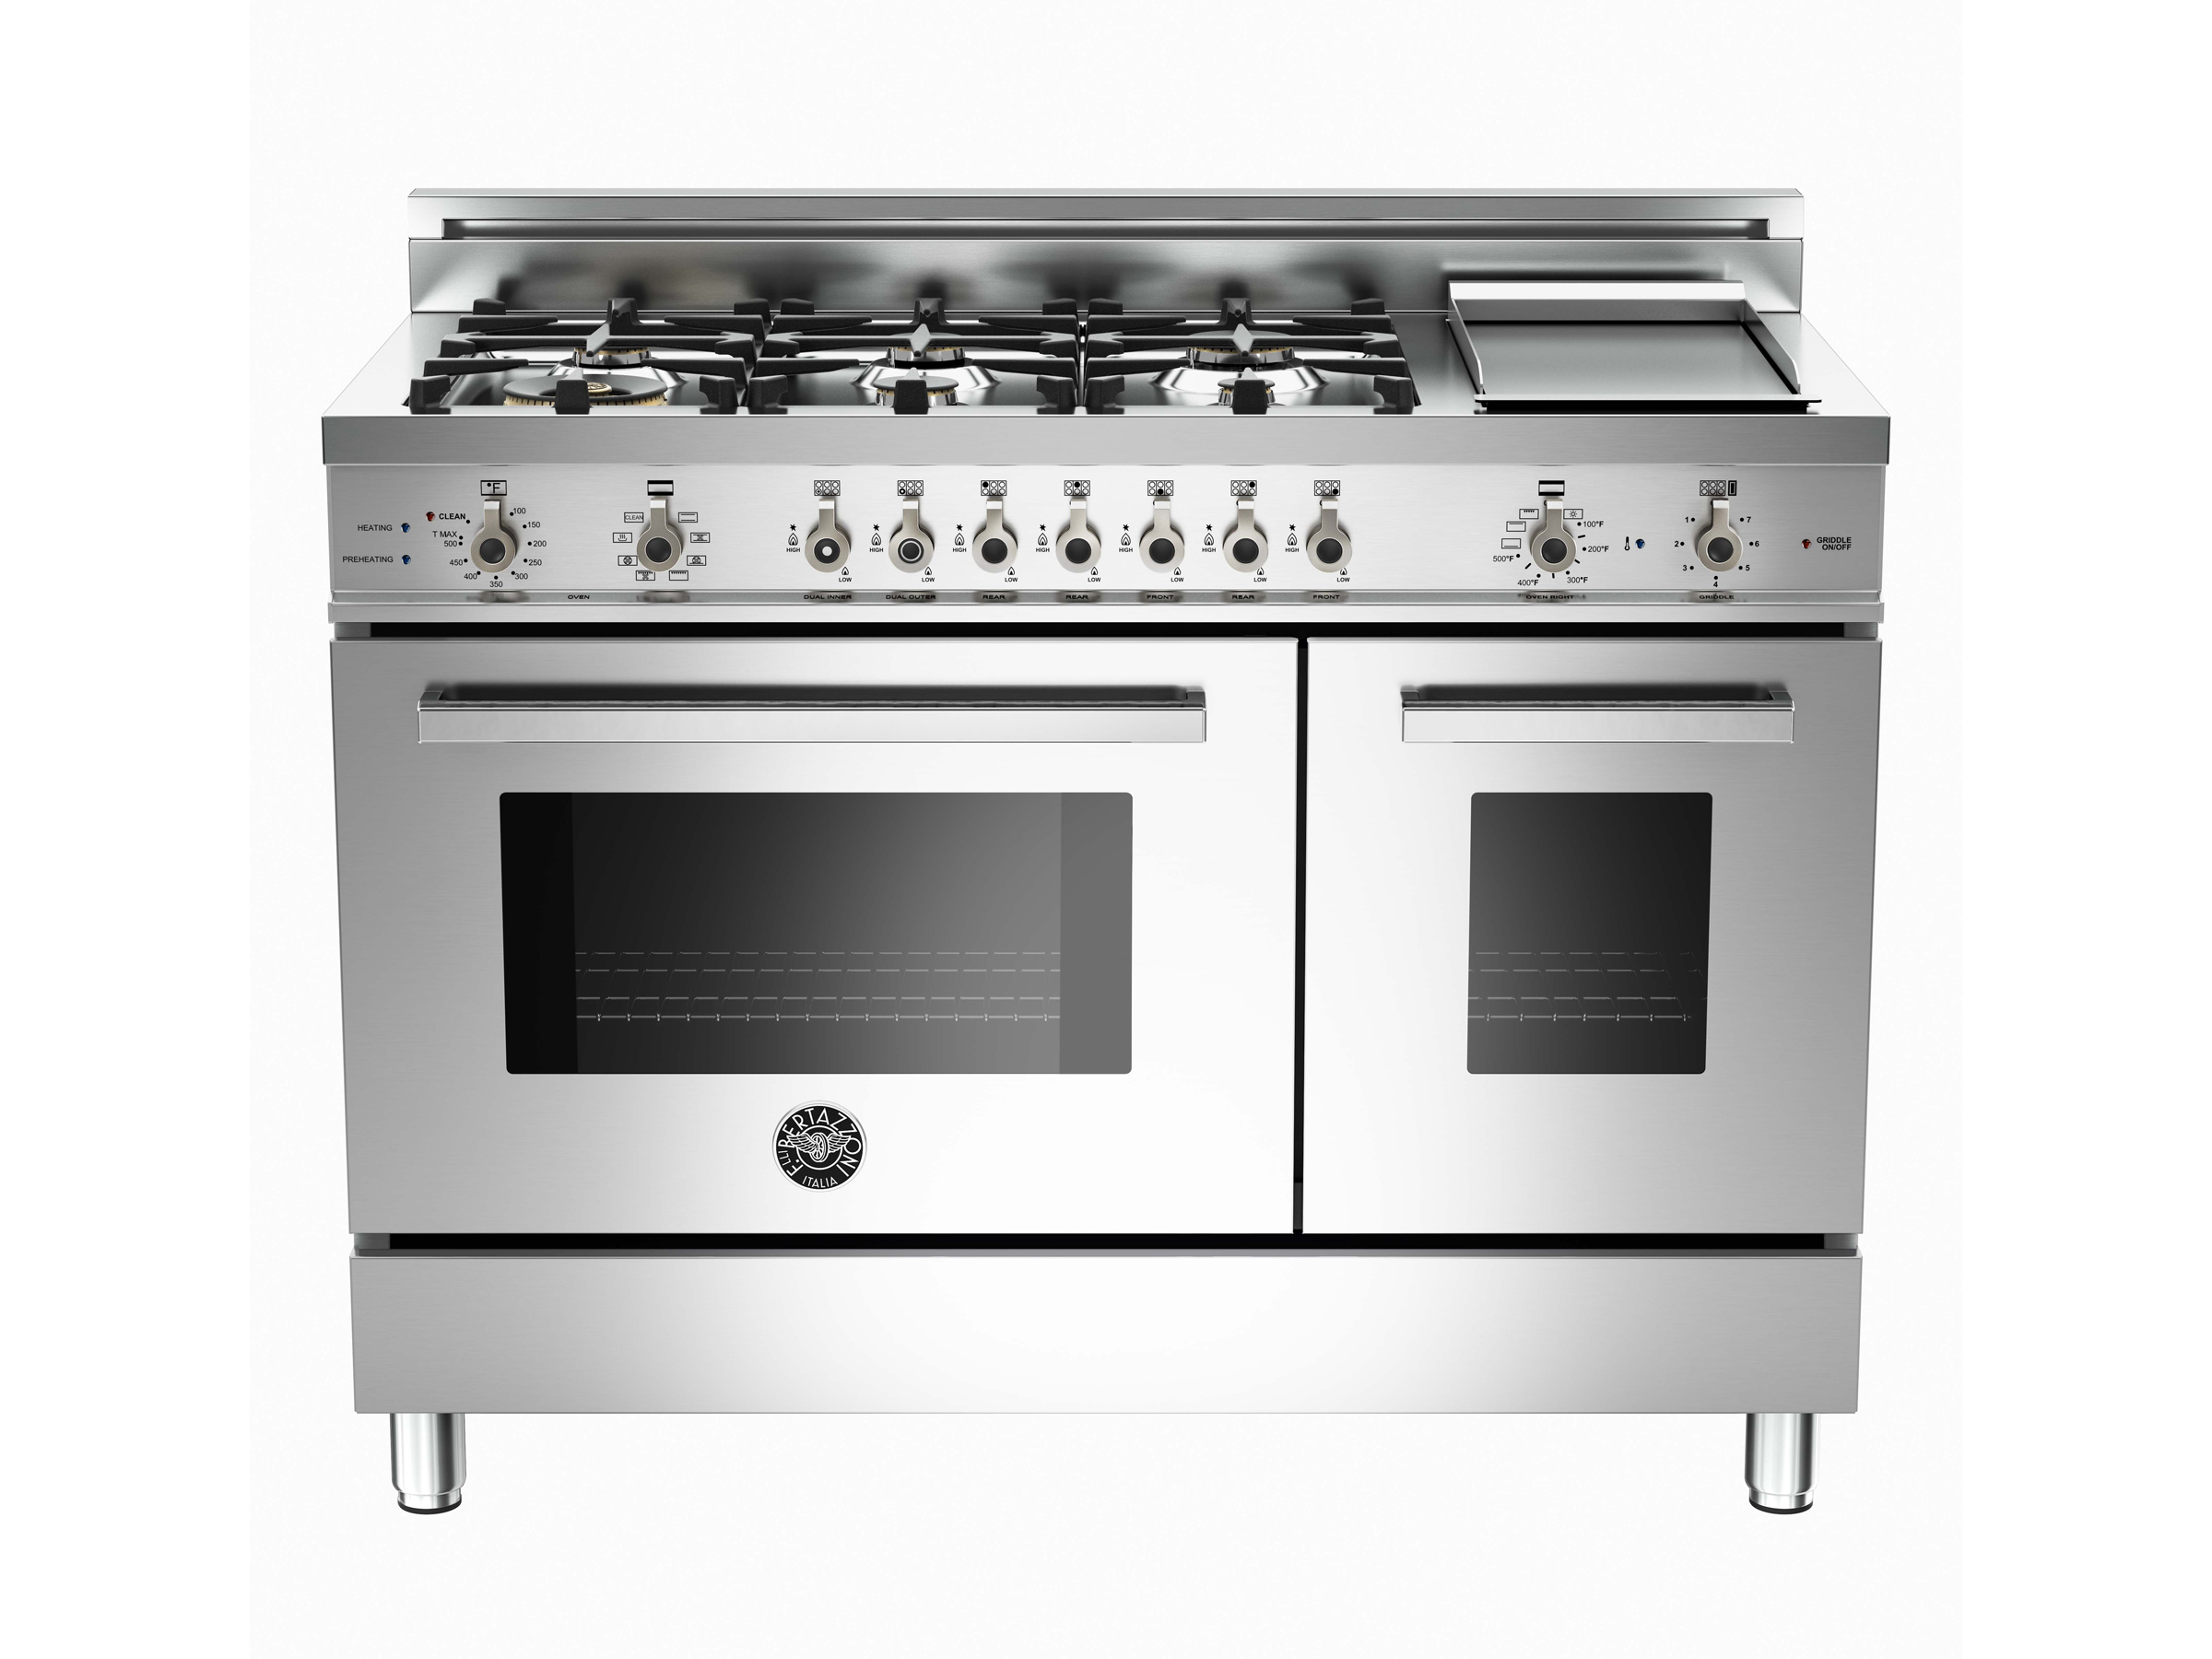 48 6 Burner + Griddle, Electric Self Clean Double Oven | Bertazzoni